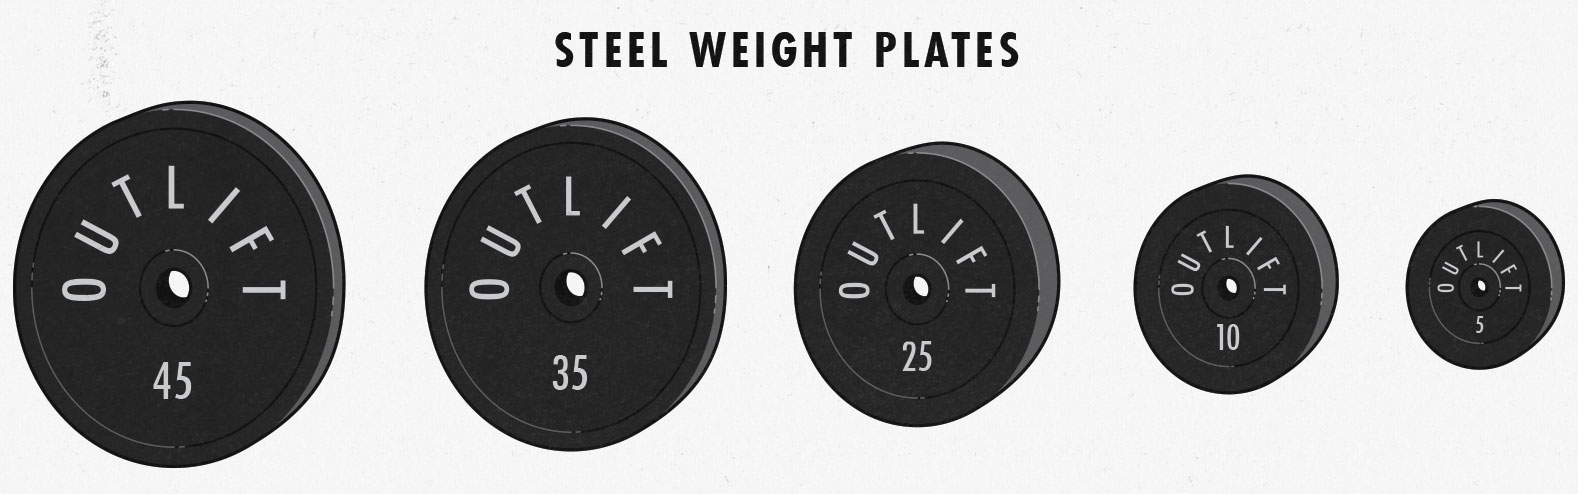 Are cast iron or machined steel weight plates better for a barbell home gym?